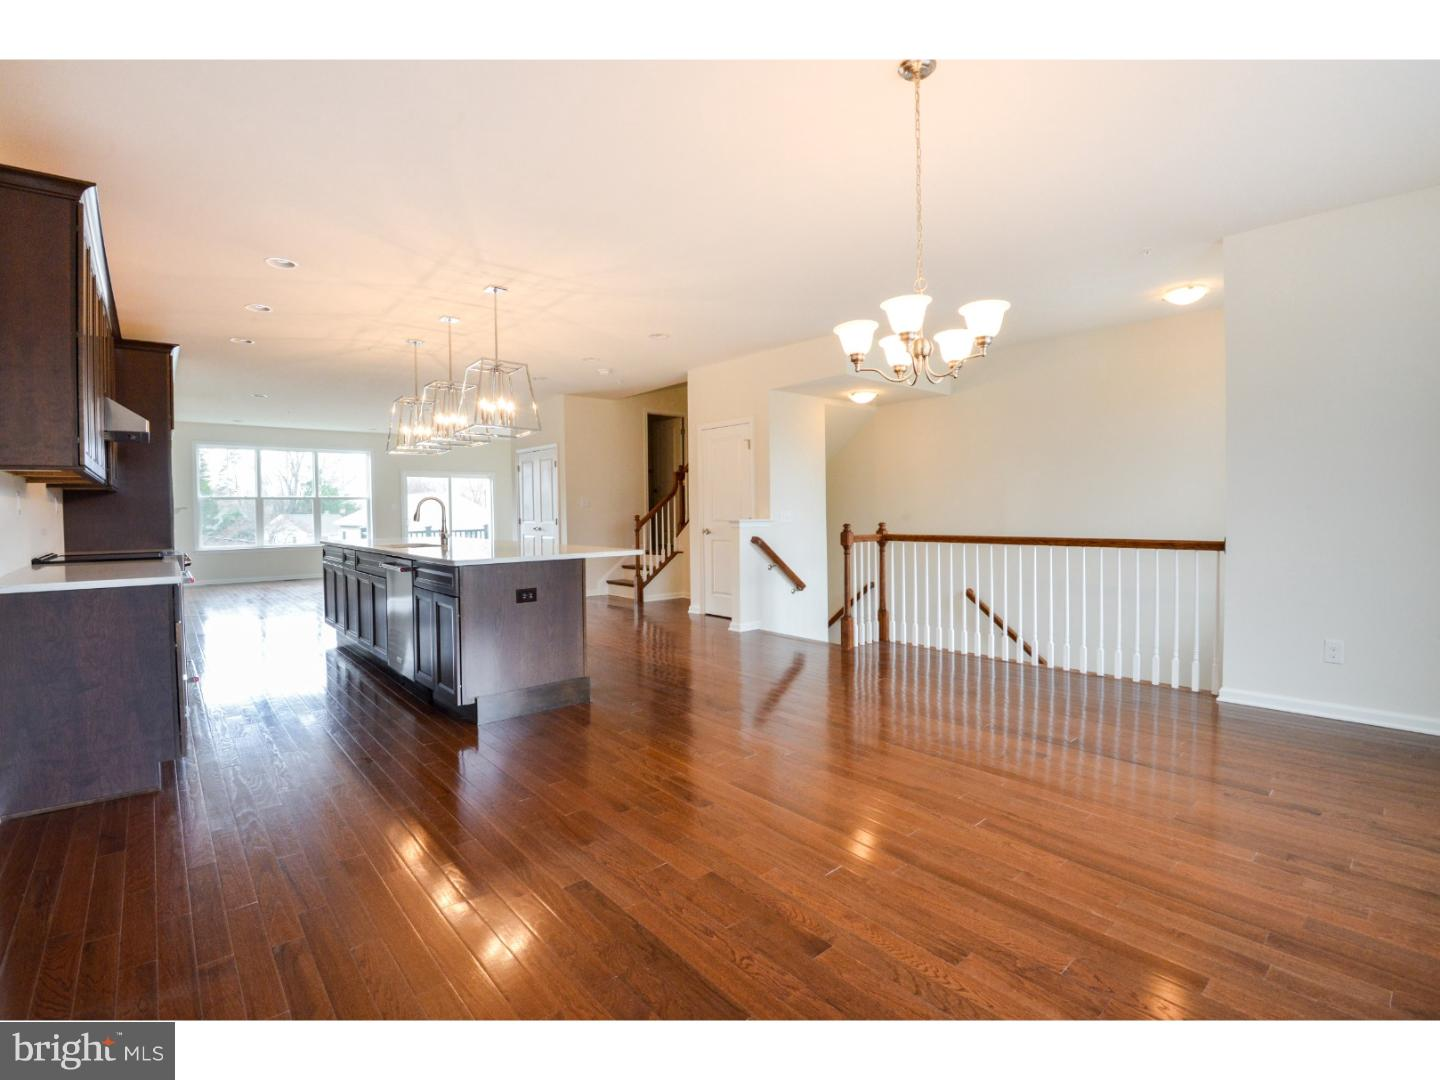 23 New Countryside Drive West Chester , PA 19382